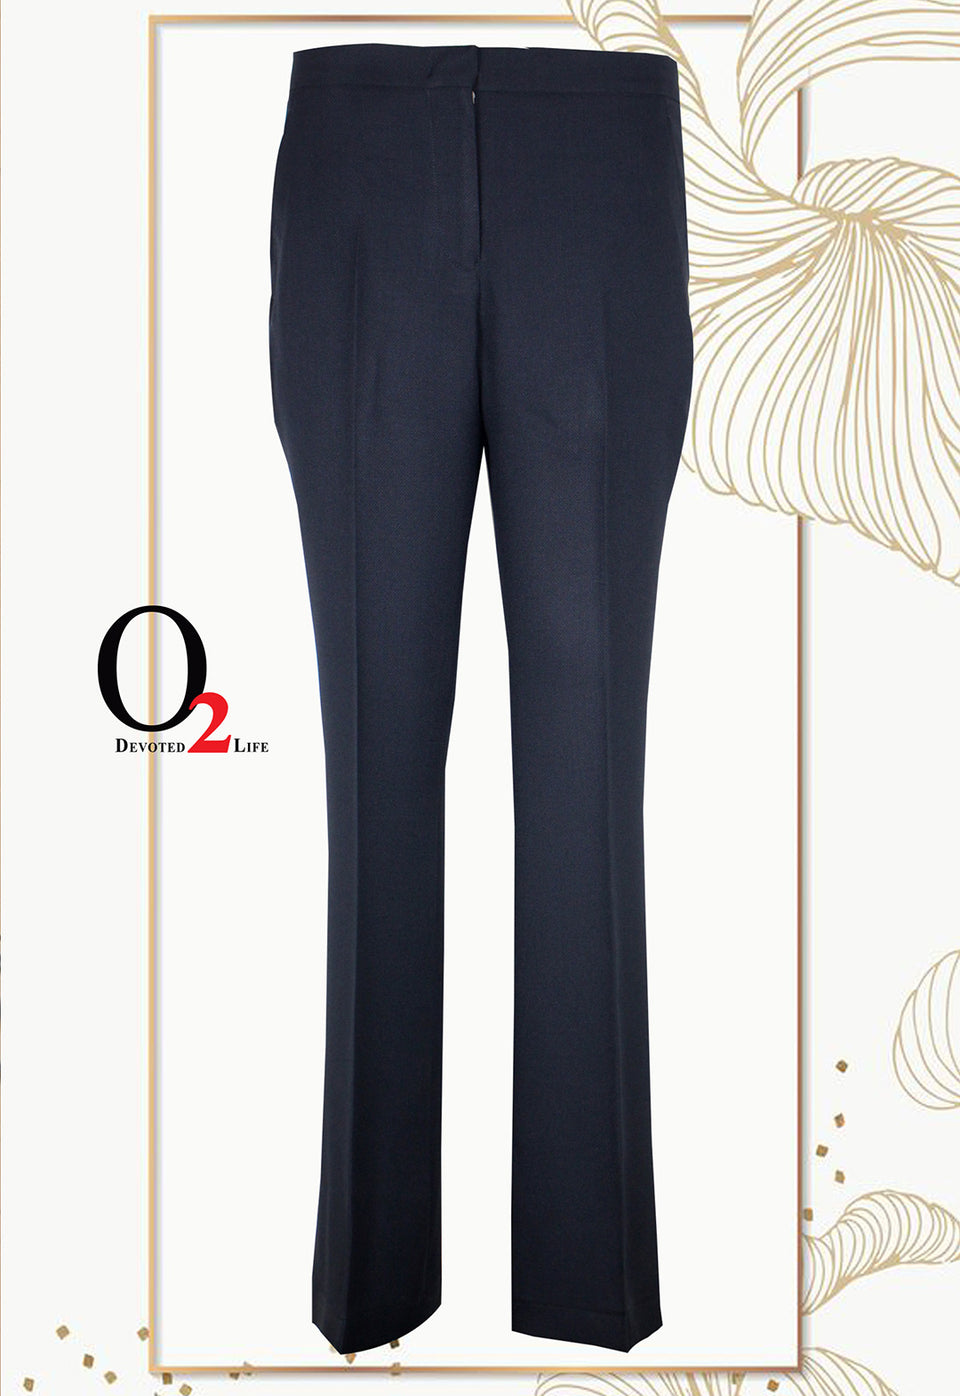 DARK NAVY Boot Leg Pant